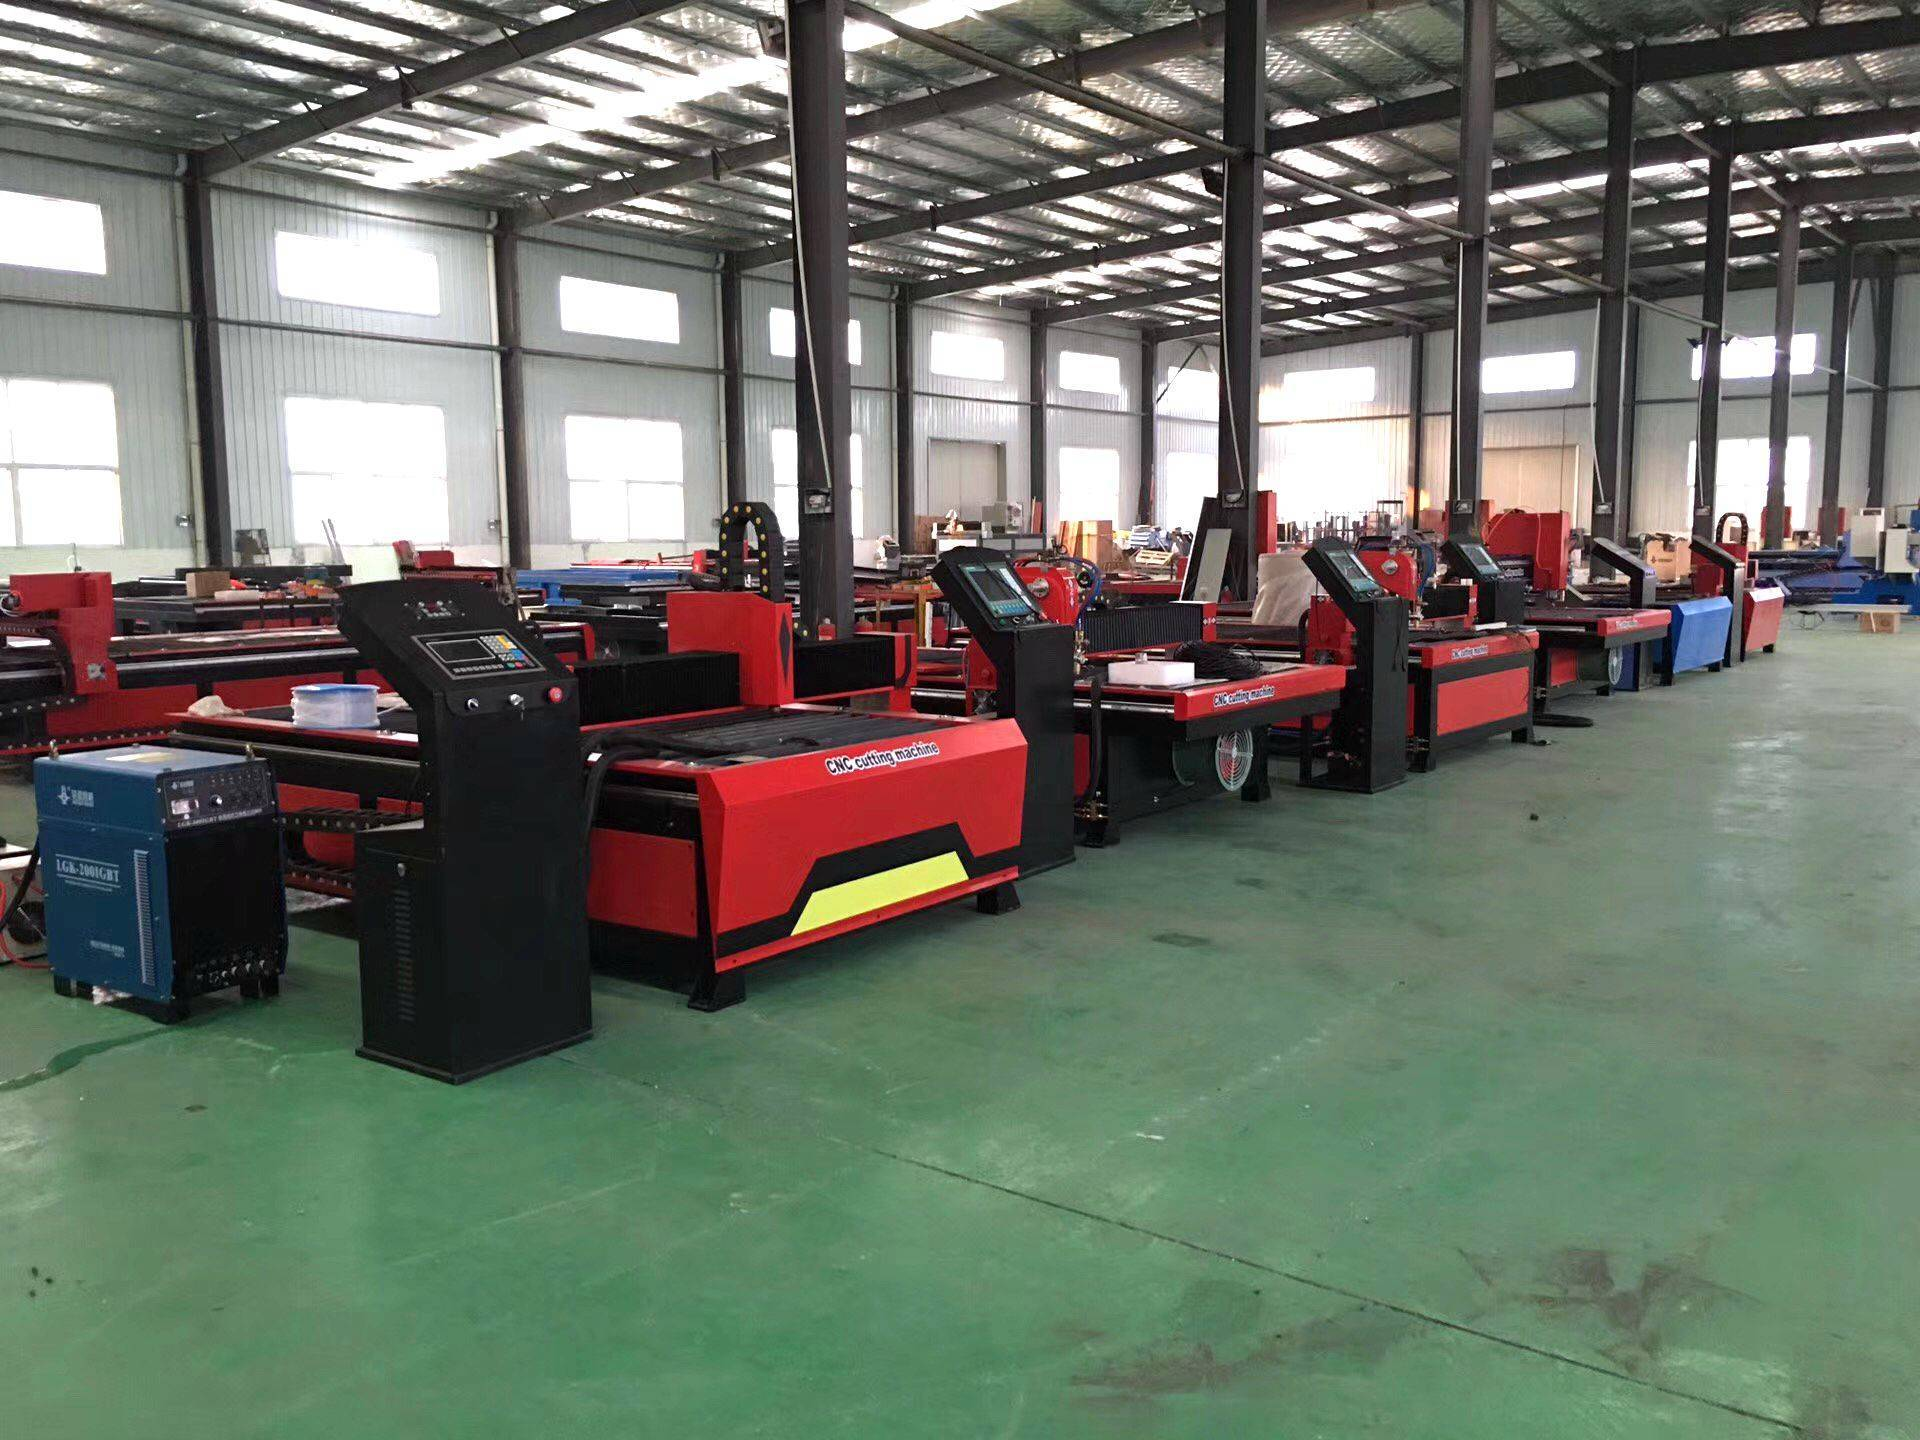 What is the working principle and application scope of plasma cutting machine?